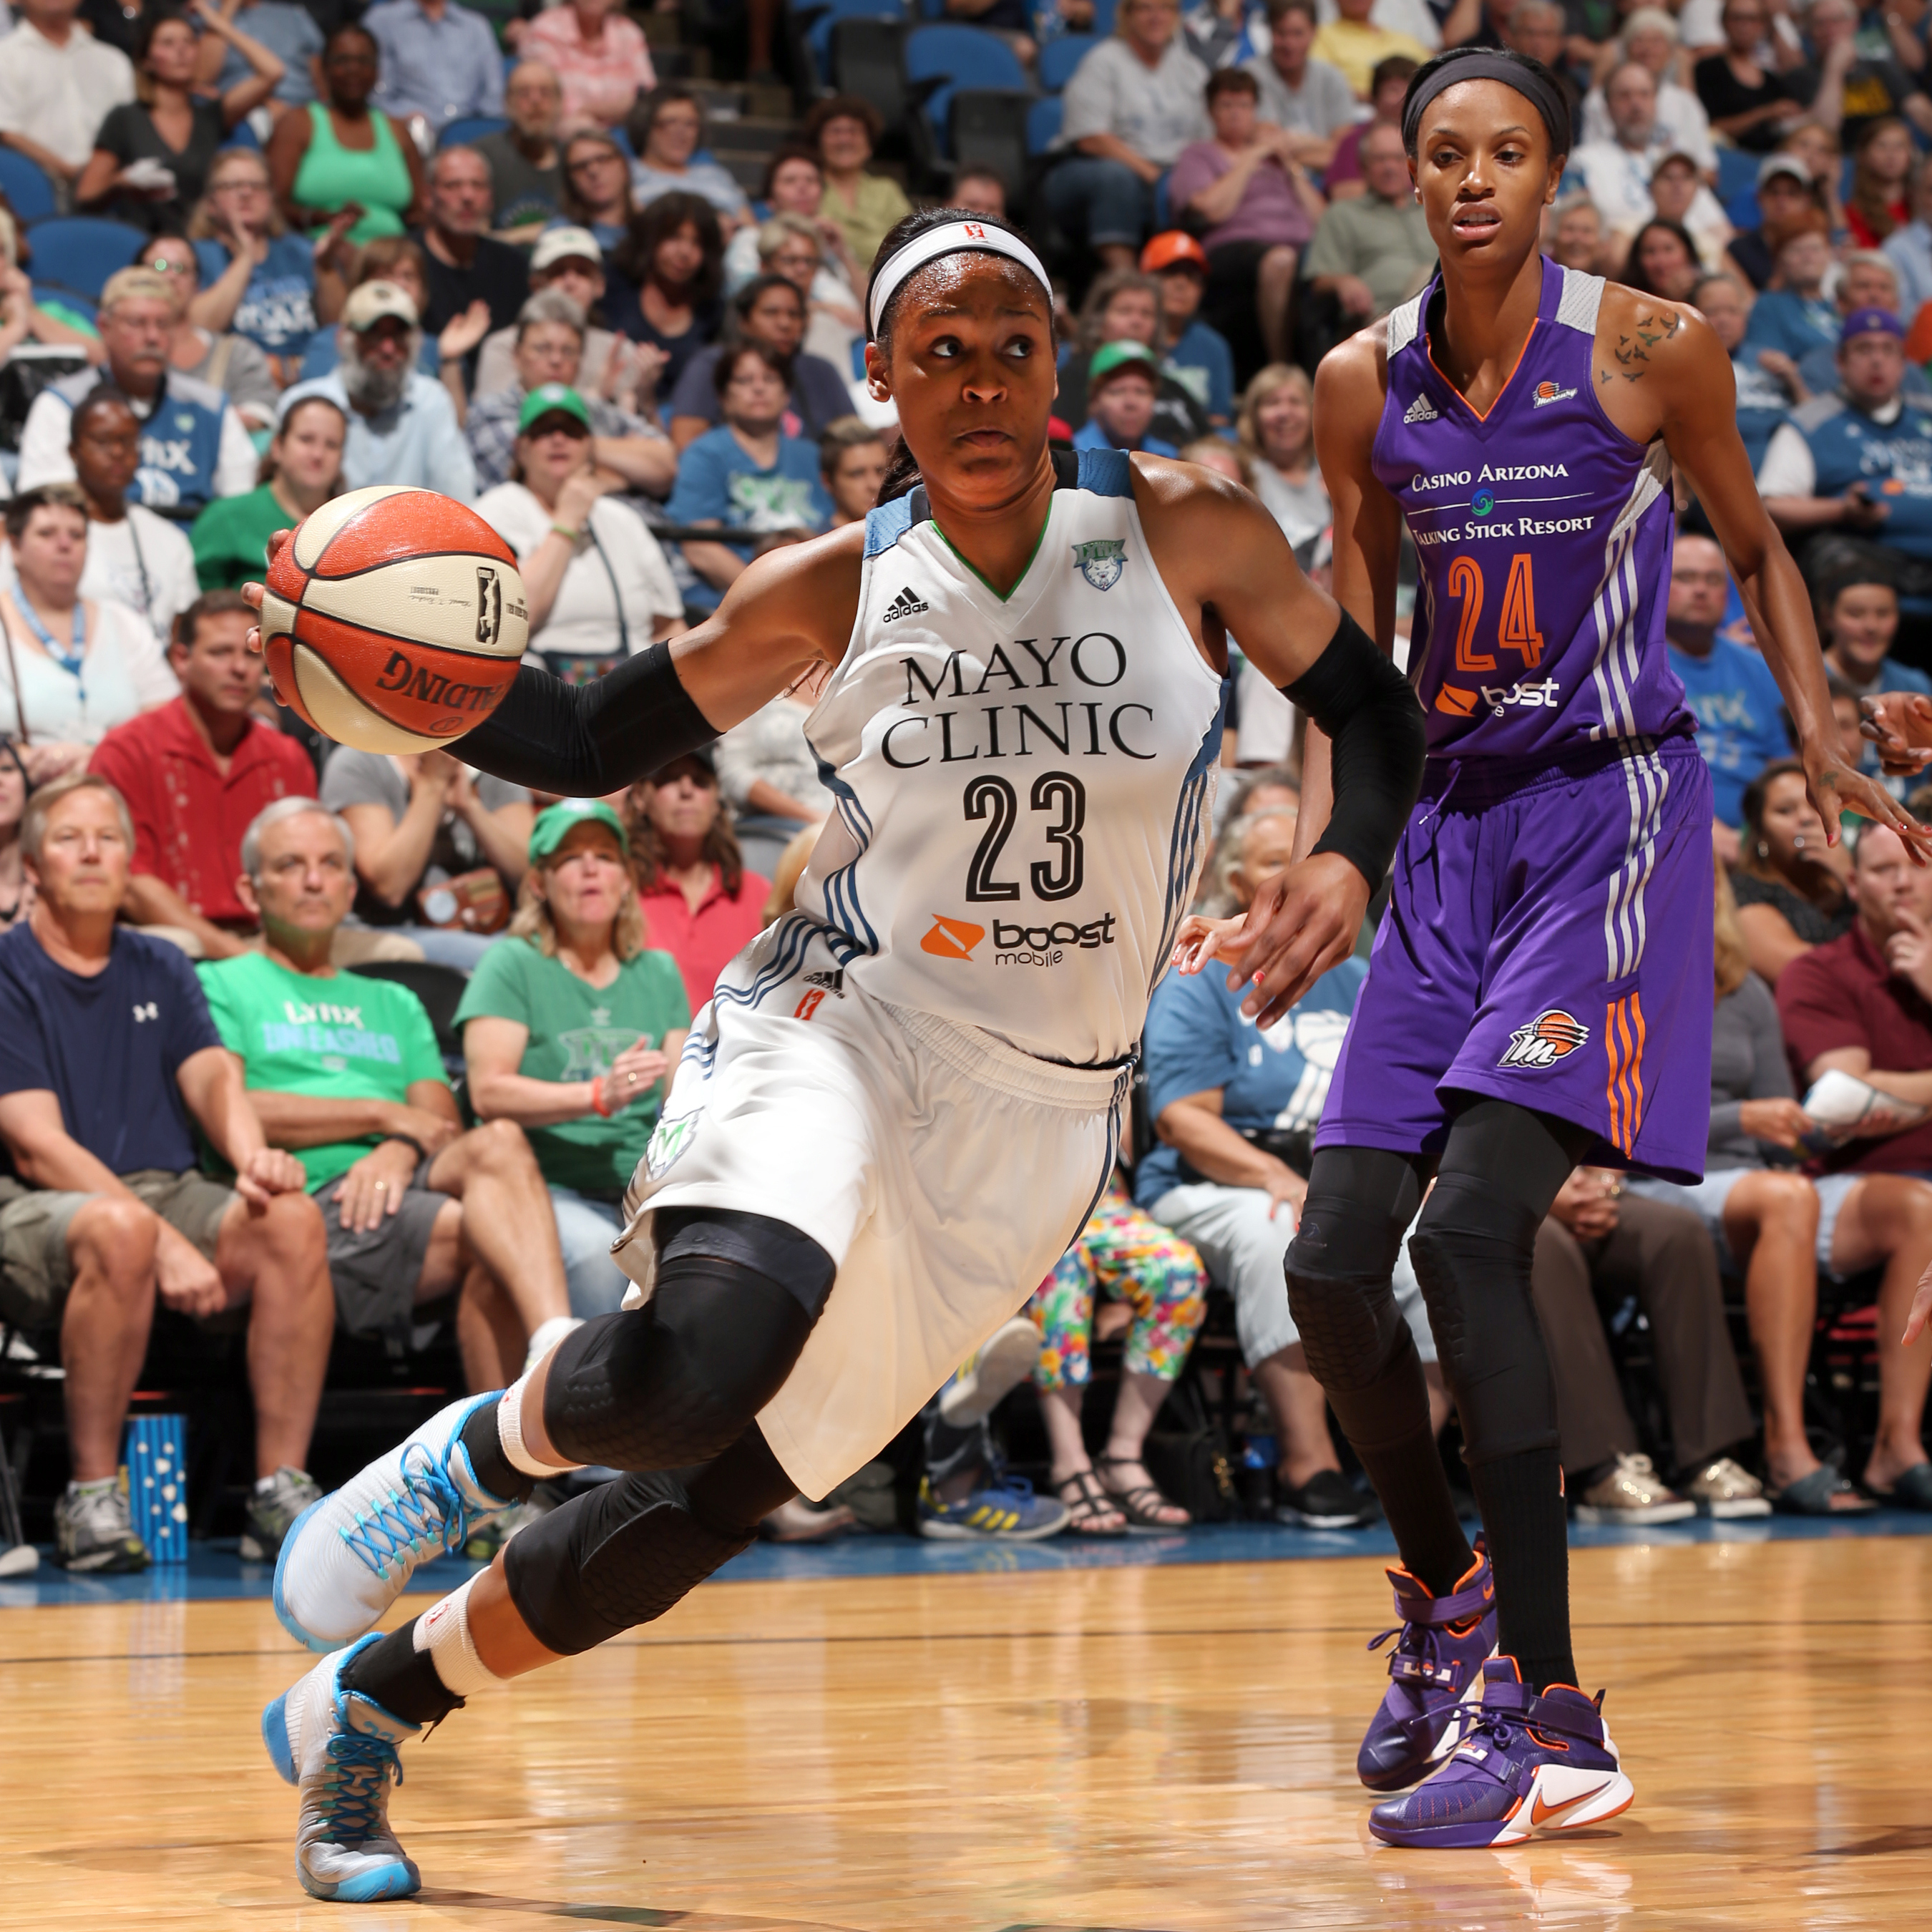 Lynx forward Maya Moore poured in a game-high 28 points to go with nine rebounds, five assists, four steals and a block.